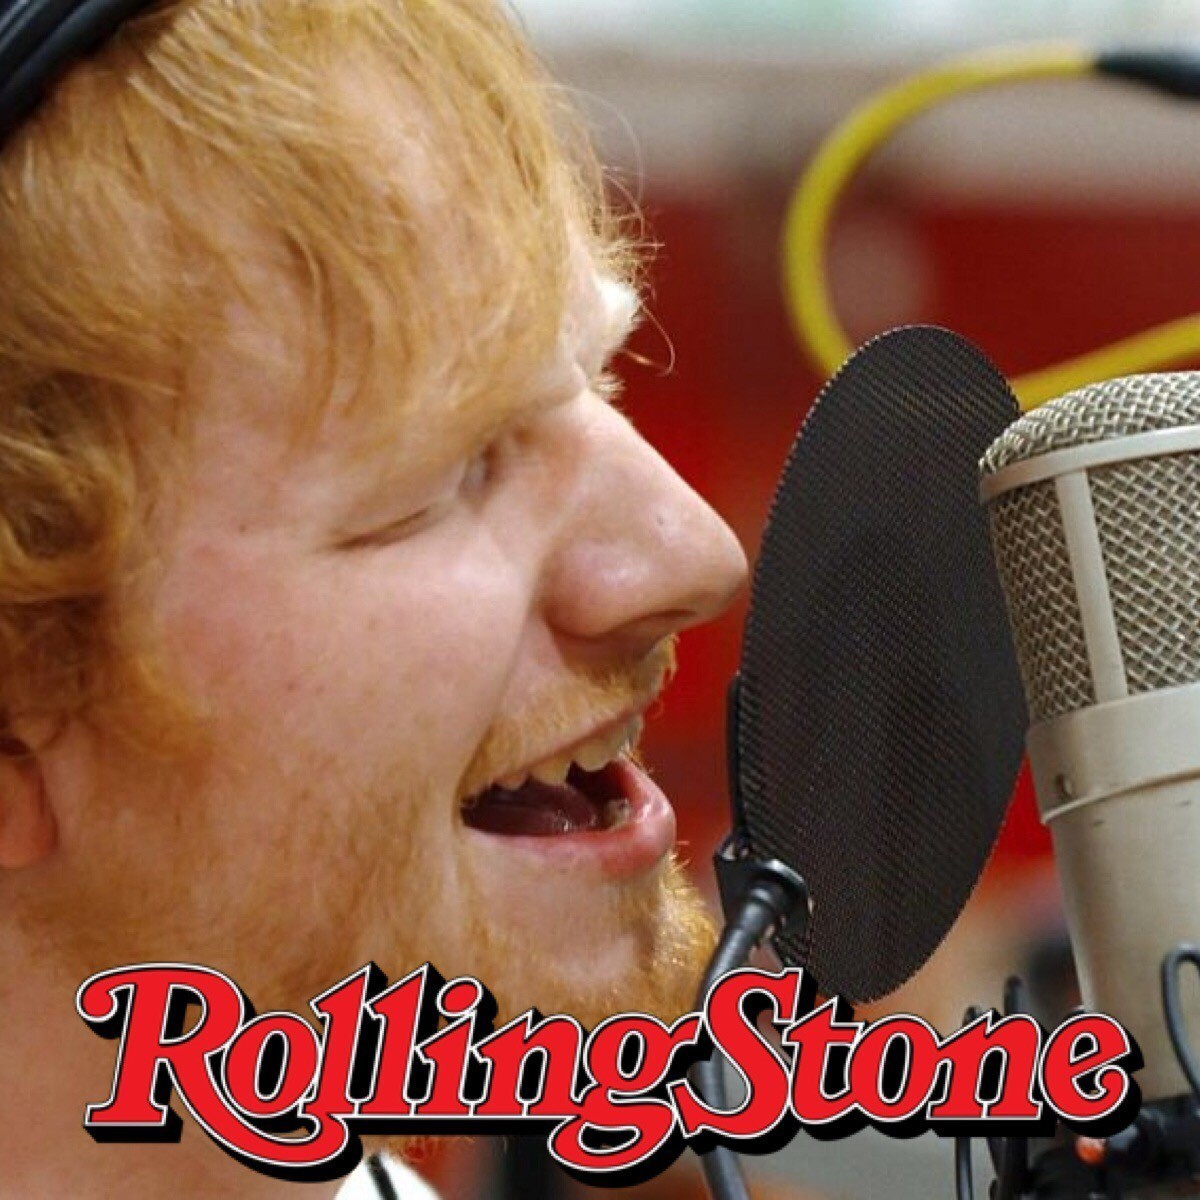 Articlehome songwriter rolling stone magazine